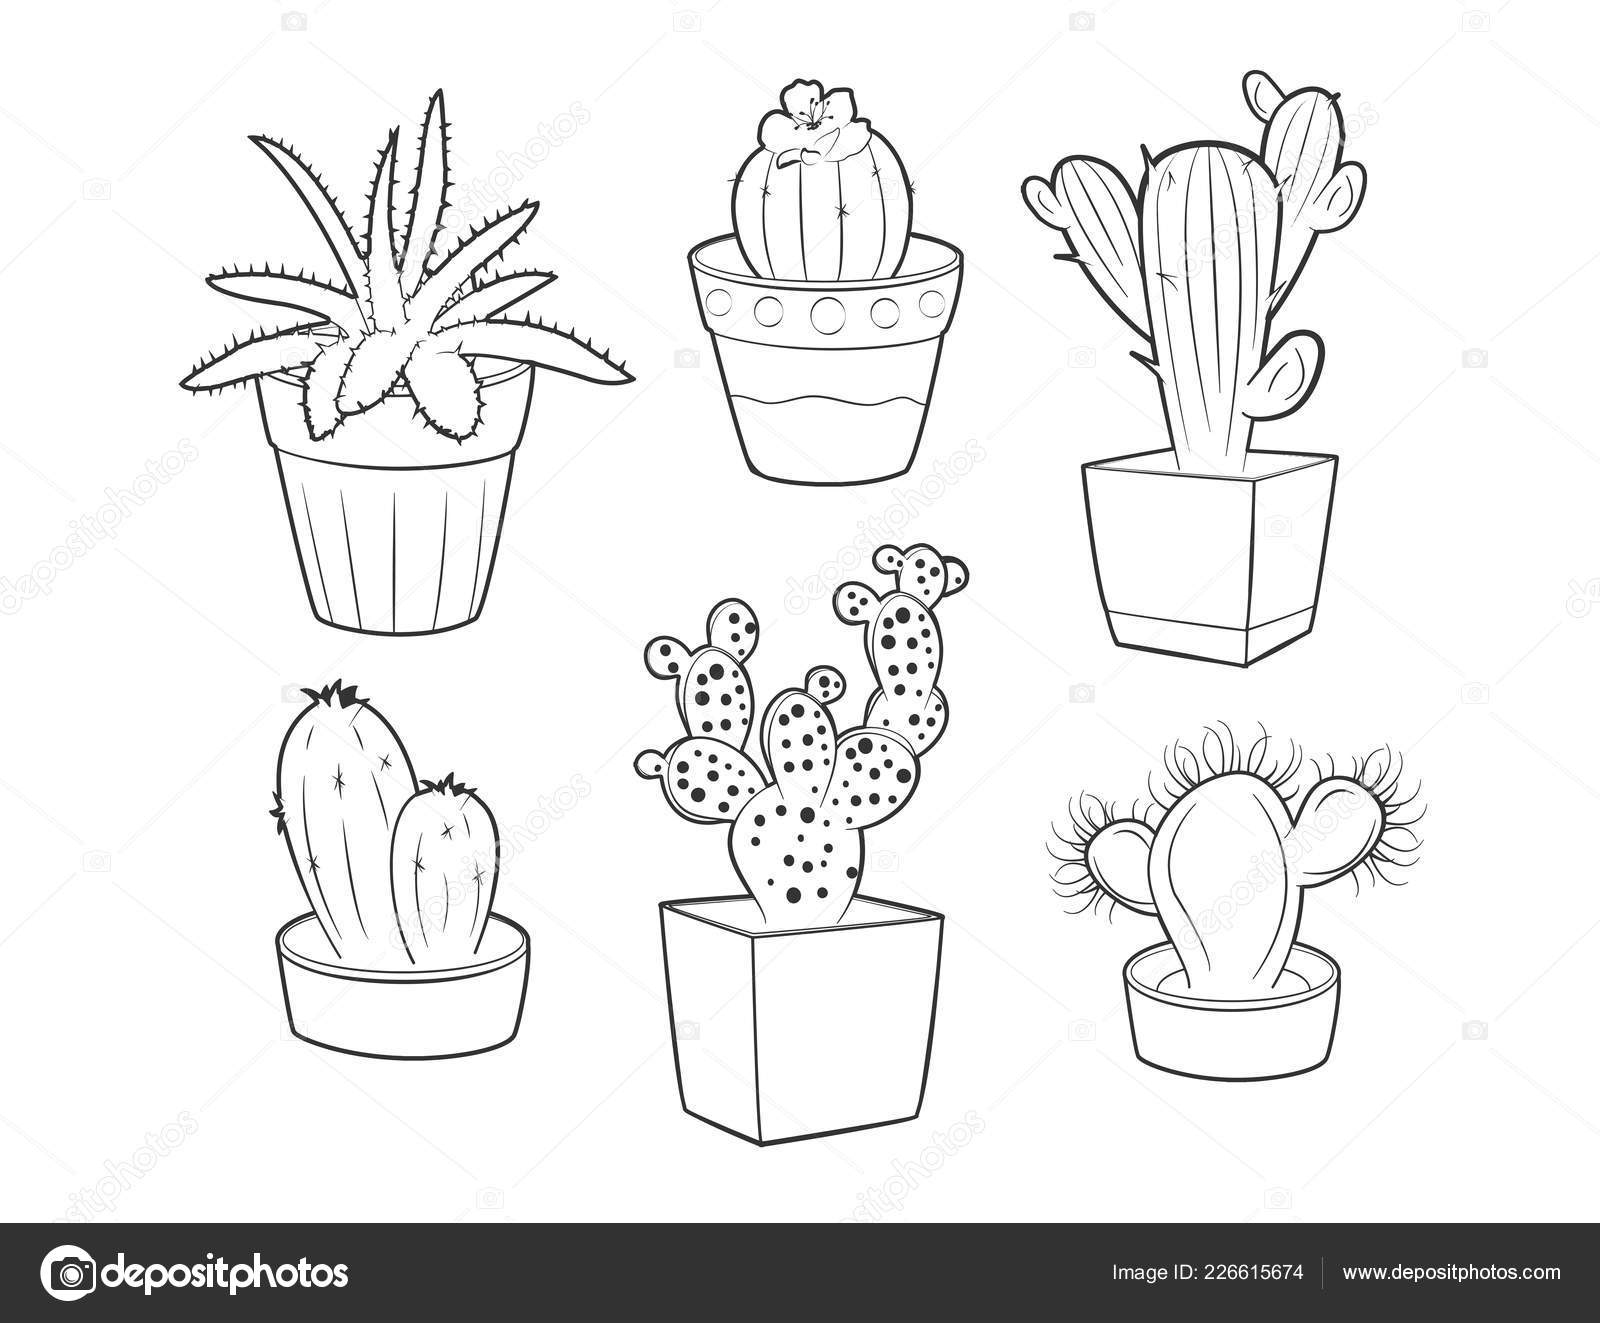 Illustration Vectorielle Différents Cactus Plantes Grasses